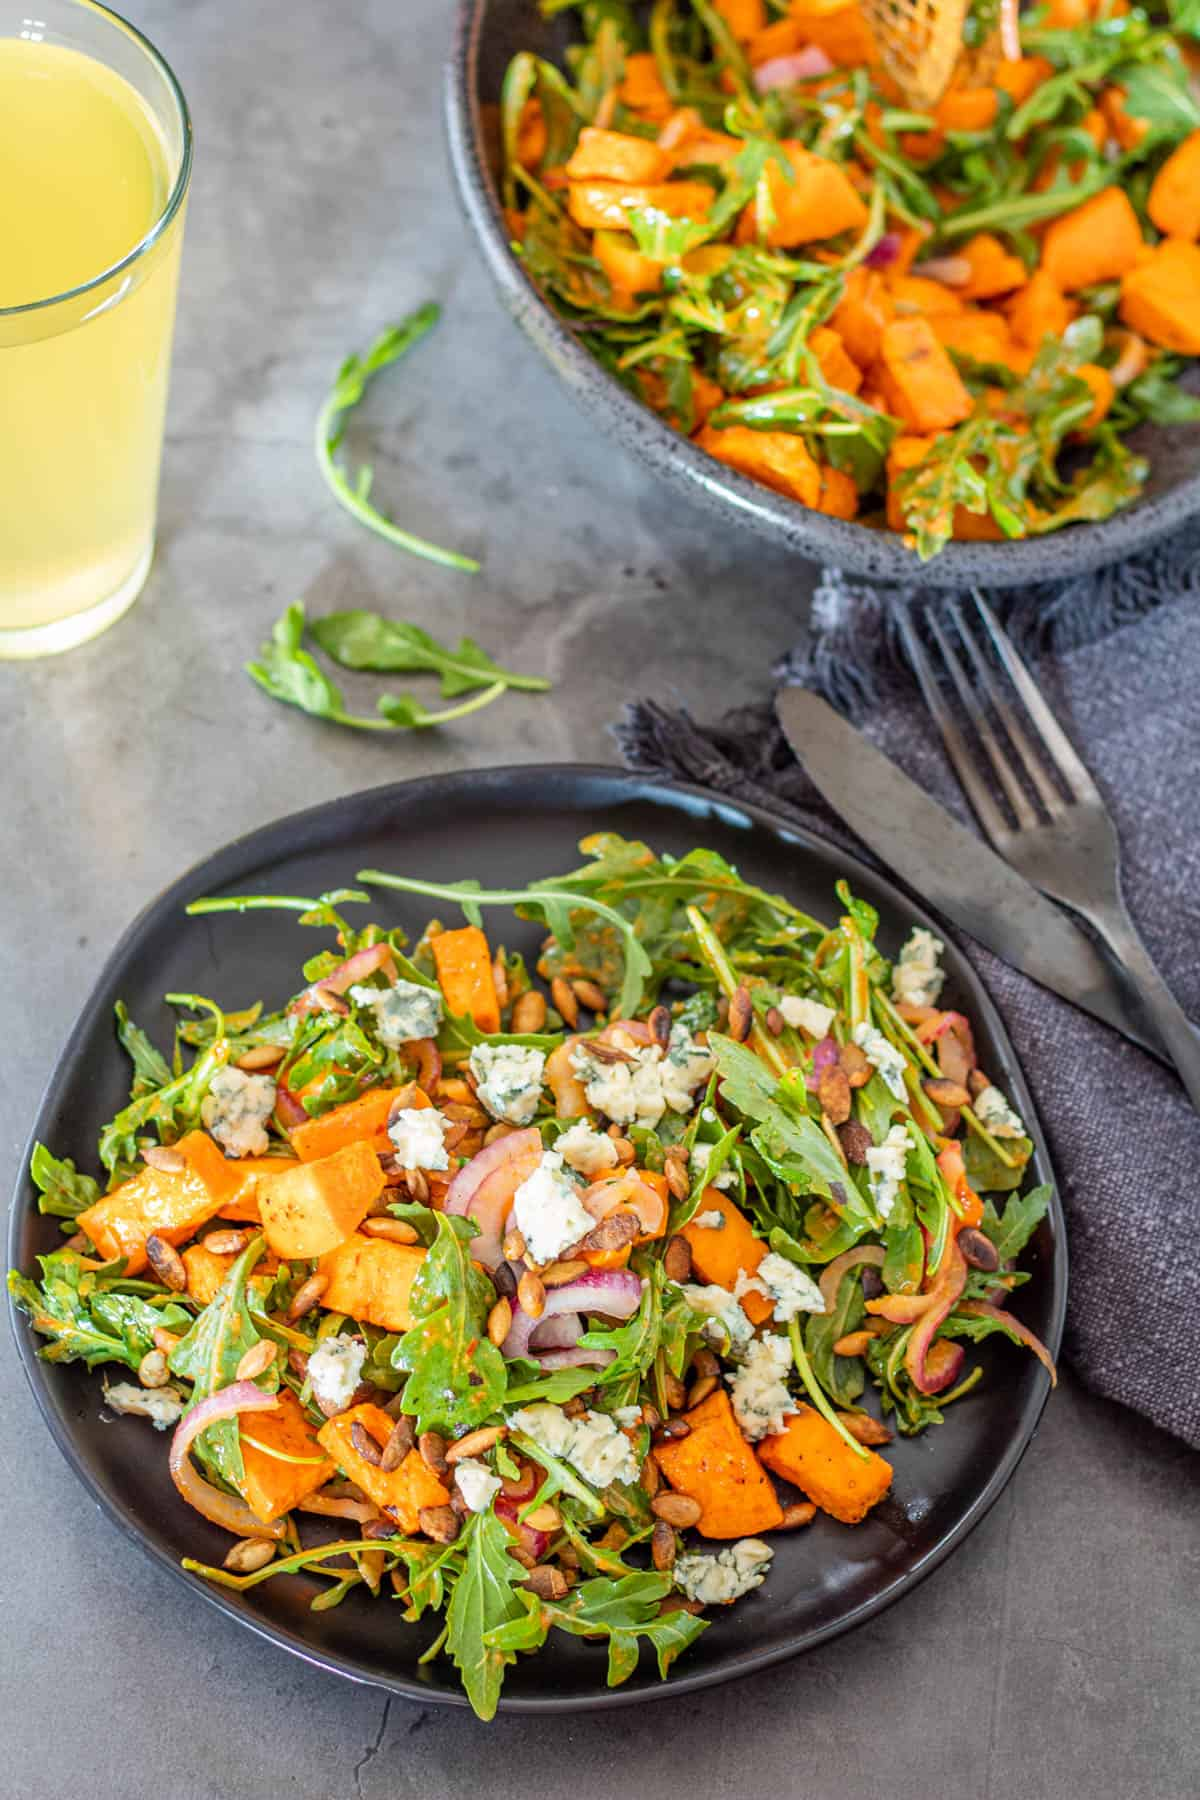 A plate of Mexican Sweet Potato Salad with Chipotle Vinaigrette combines healthy roasted sweet potatoes with peppery arugula and thin-sliced red onion with a zesty chipotle vinaigrette... optional bleu cheese and pepitas make this a spectacular vegetarian main dish salad or side dish with your mains! next to a large bowl of salad with flatware, grey napkin, and a beer.